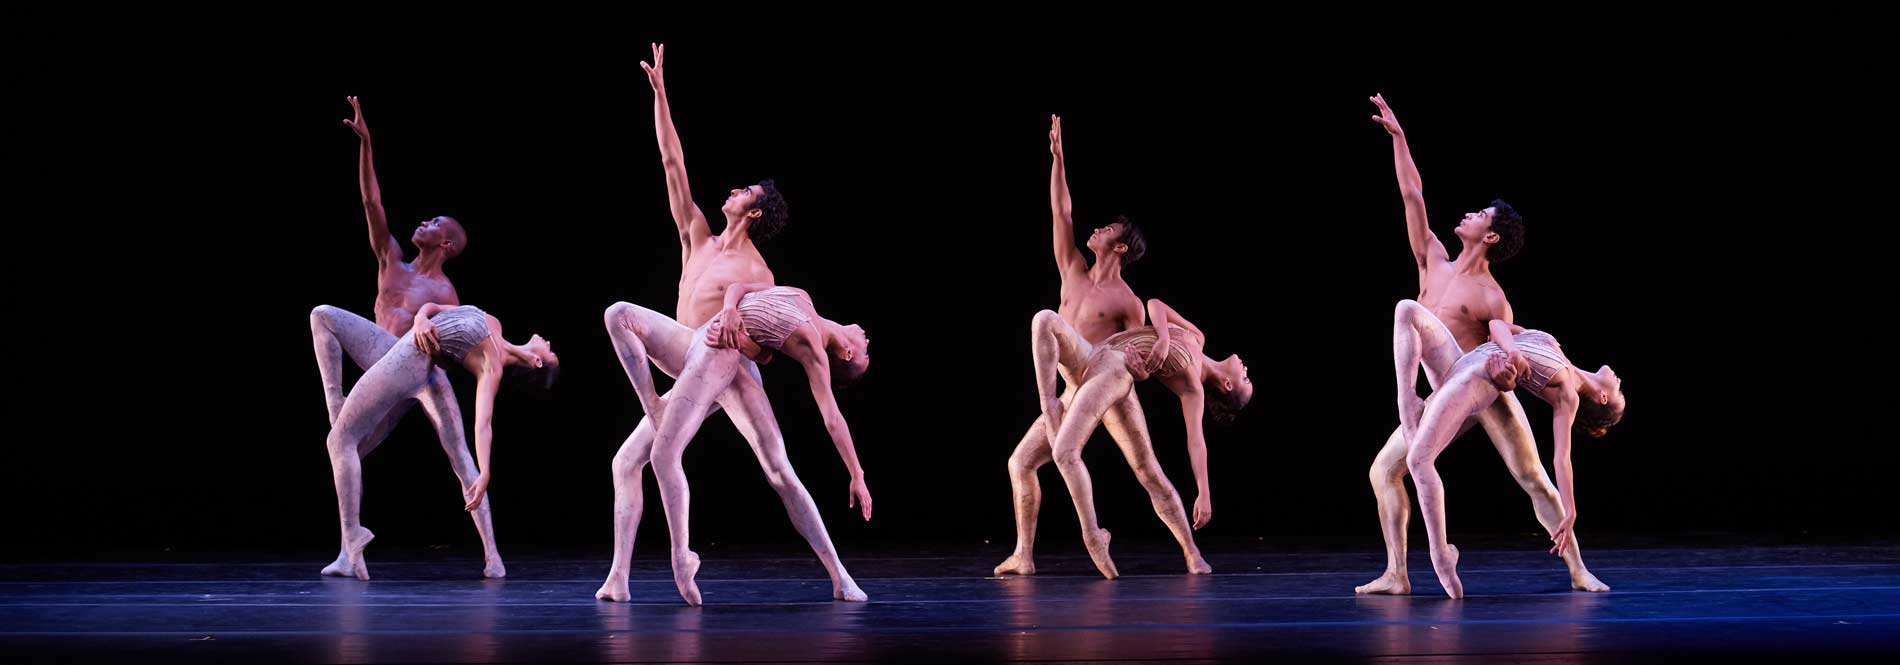 Acclaimed ballet company making stop May 5 at Escher Auditorium, CSB